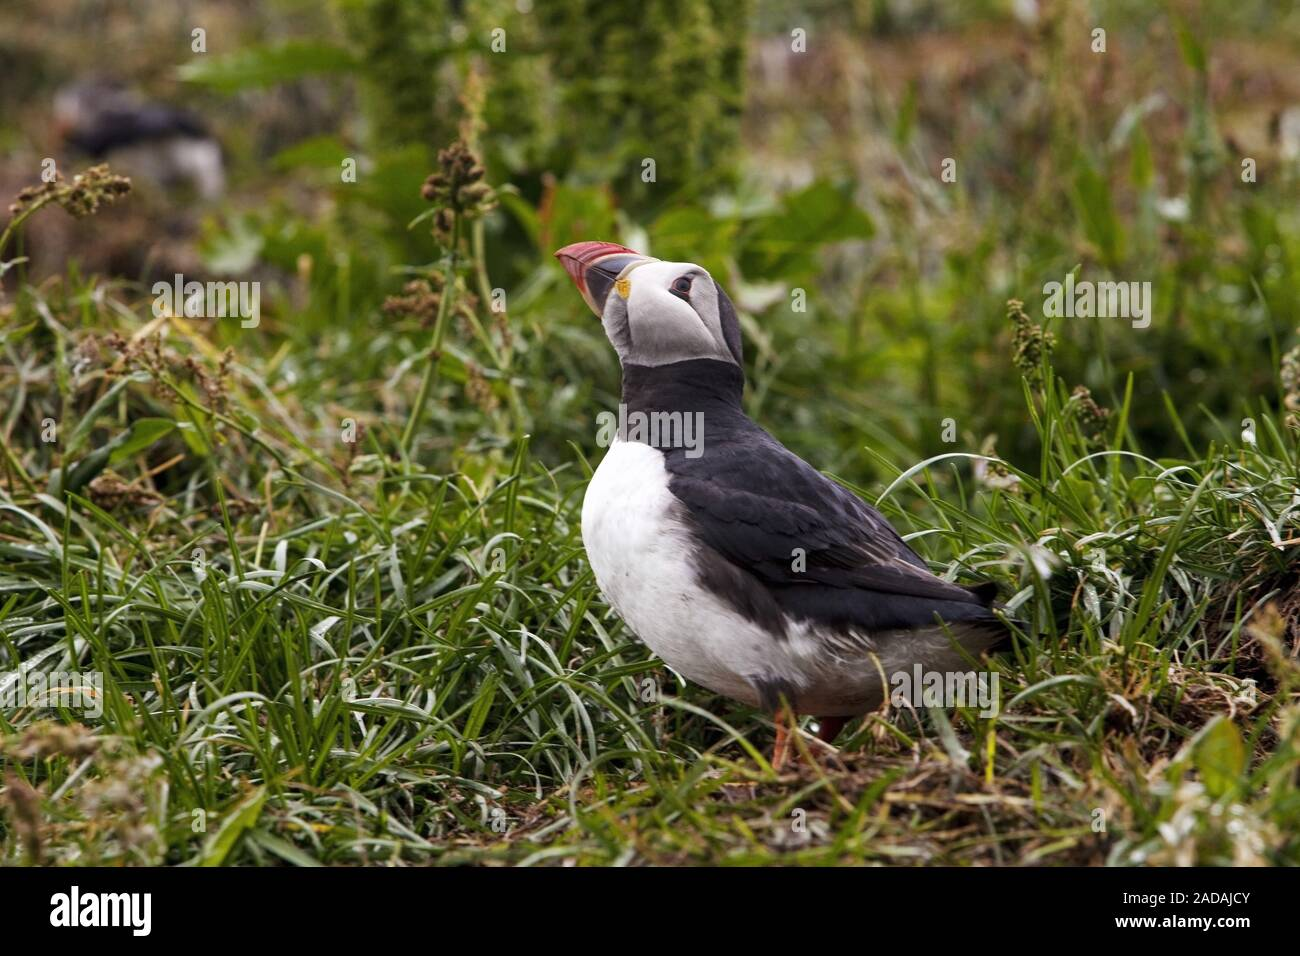 atlantic puffin, Common puffin, (Fratercula arctica), Hafnarholmi, Iceland Stock Photo